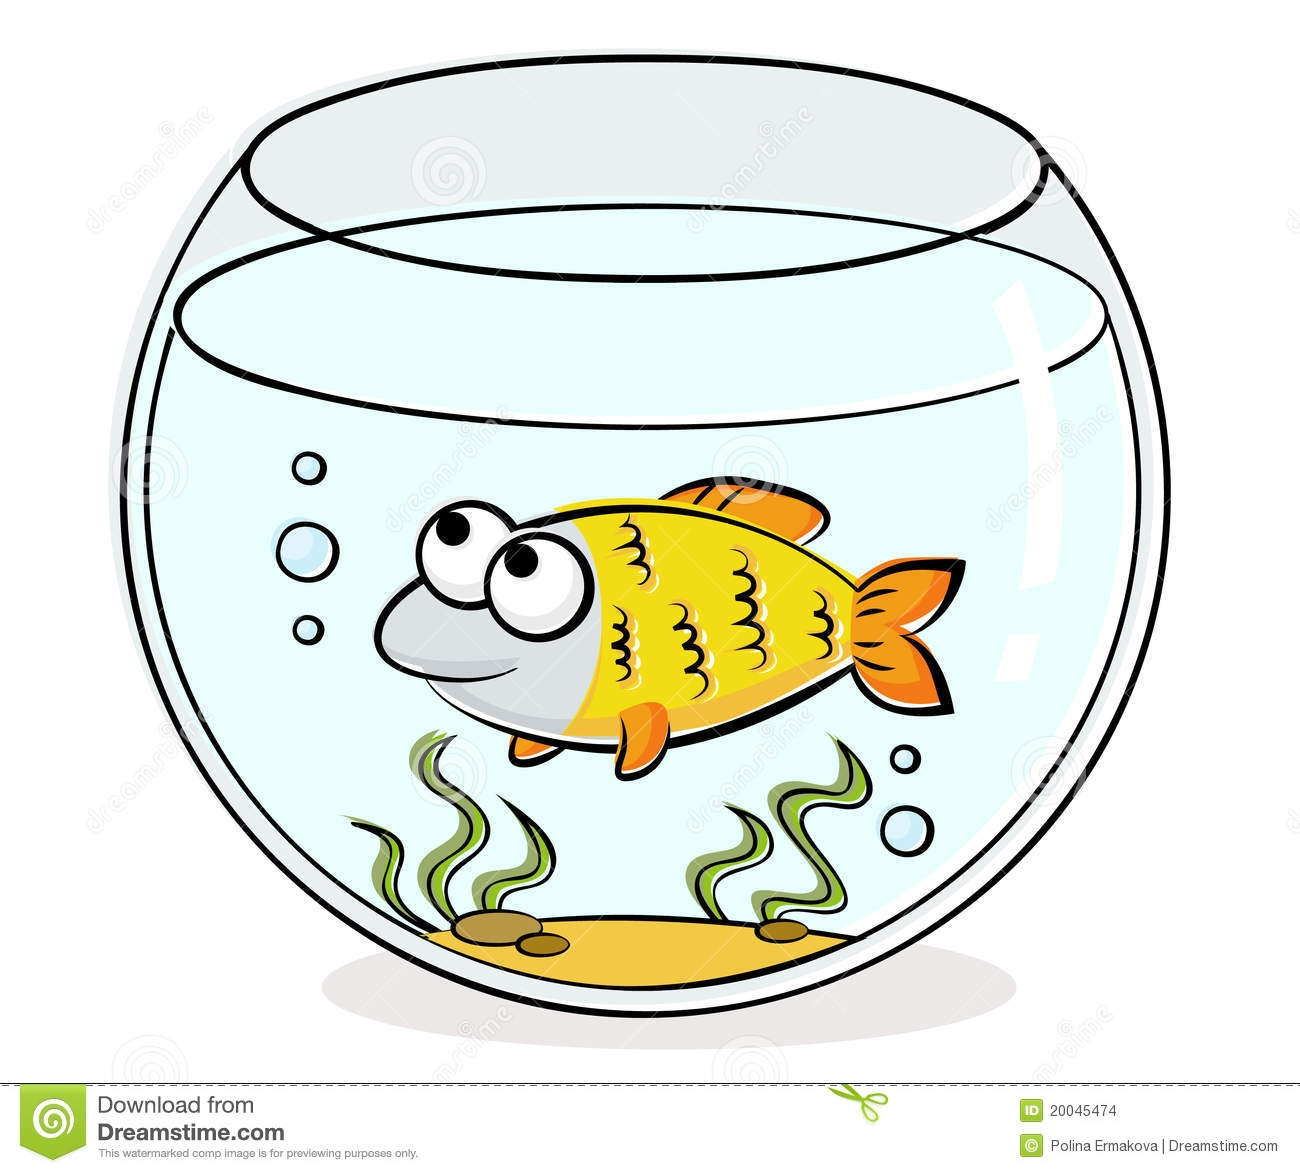 Bowl clipart aquarium. Awesome fish cartoon images